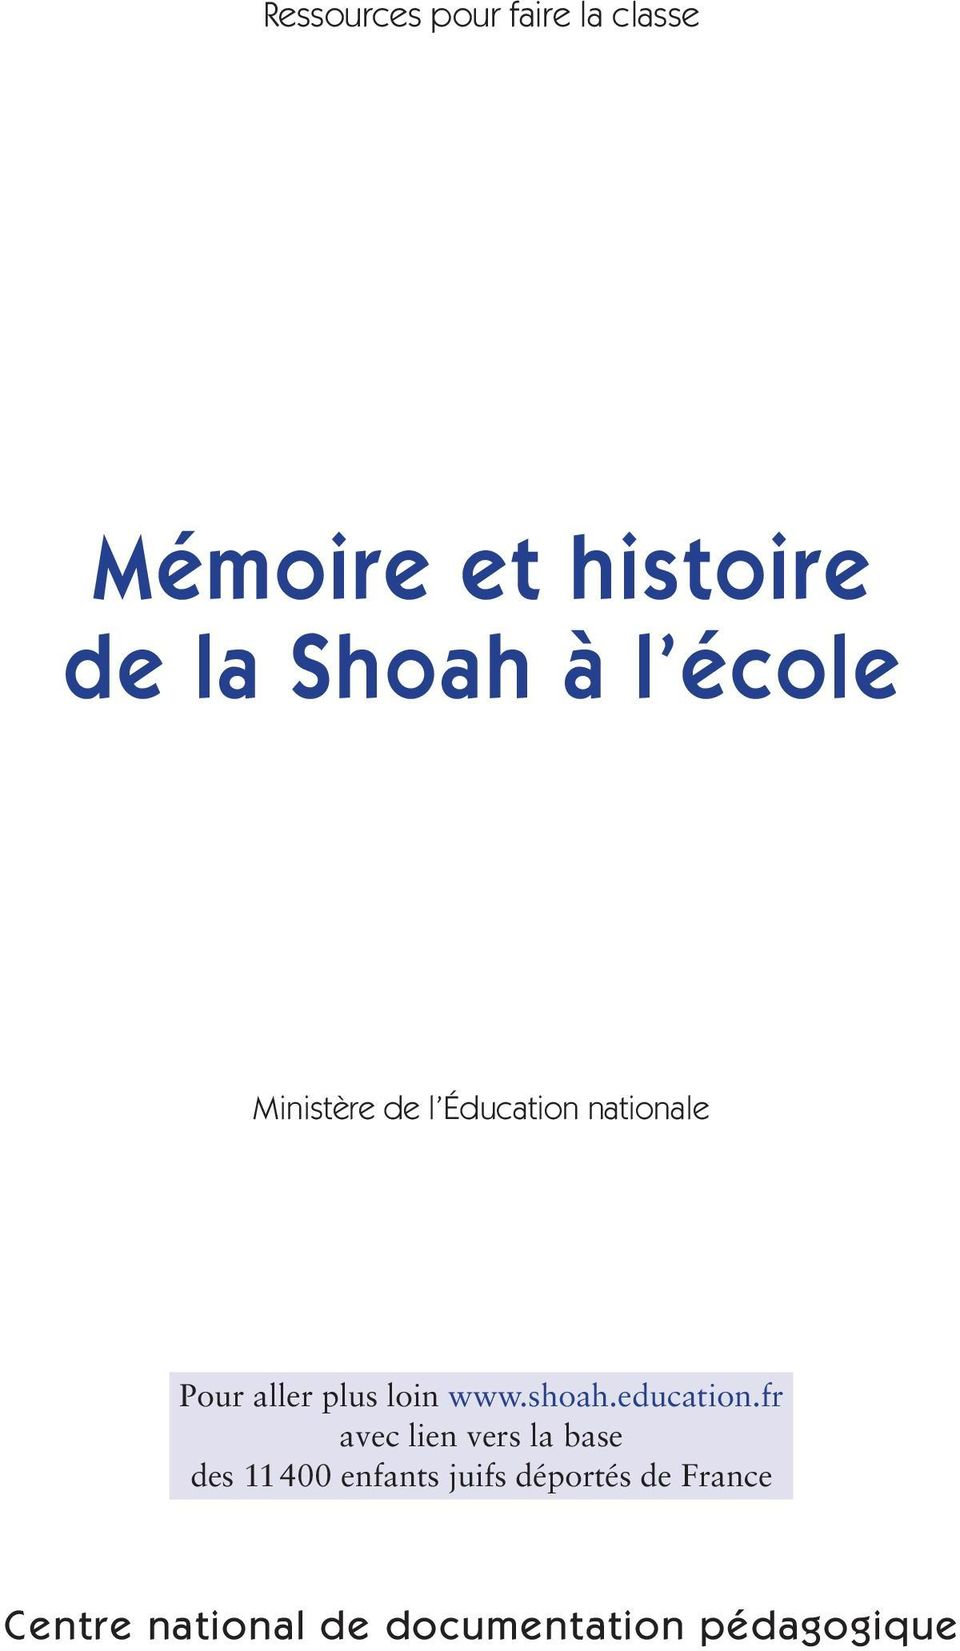 www.shoah.education.